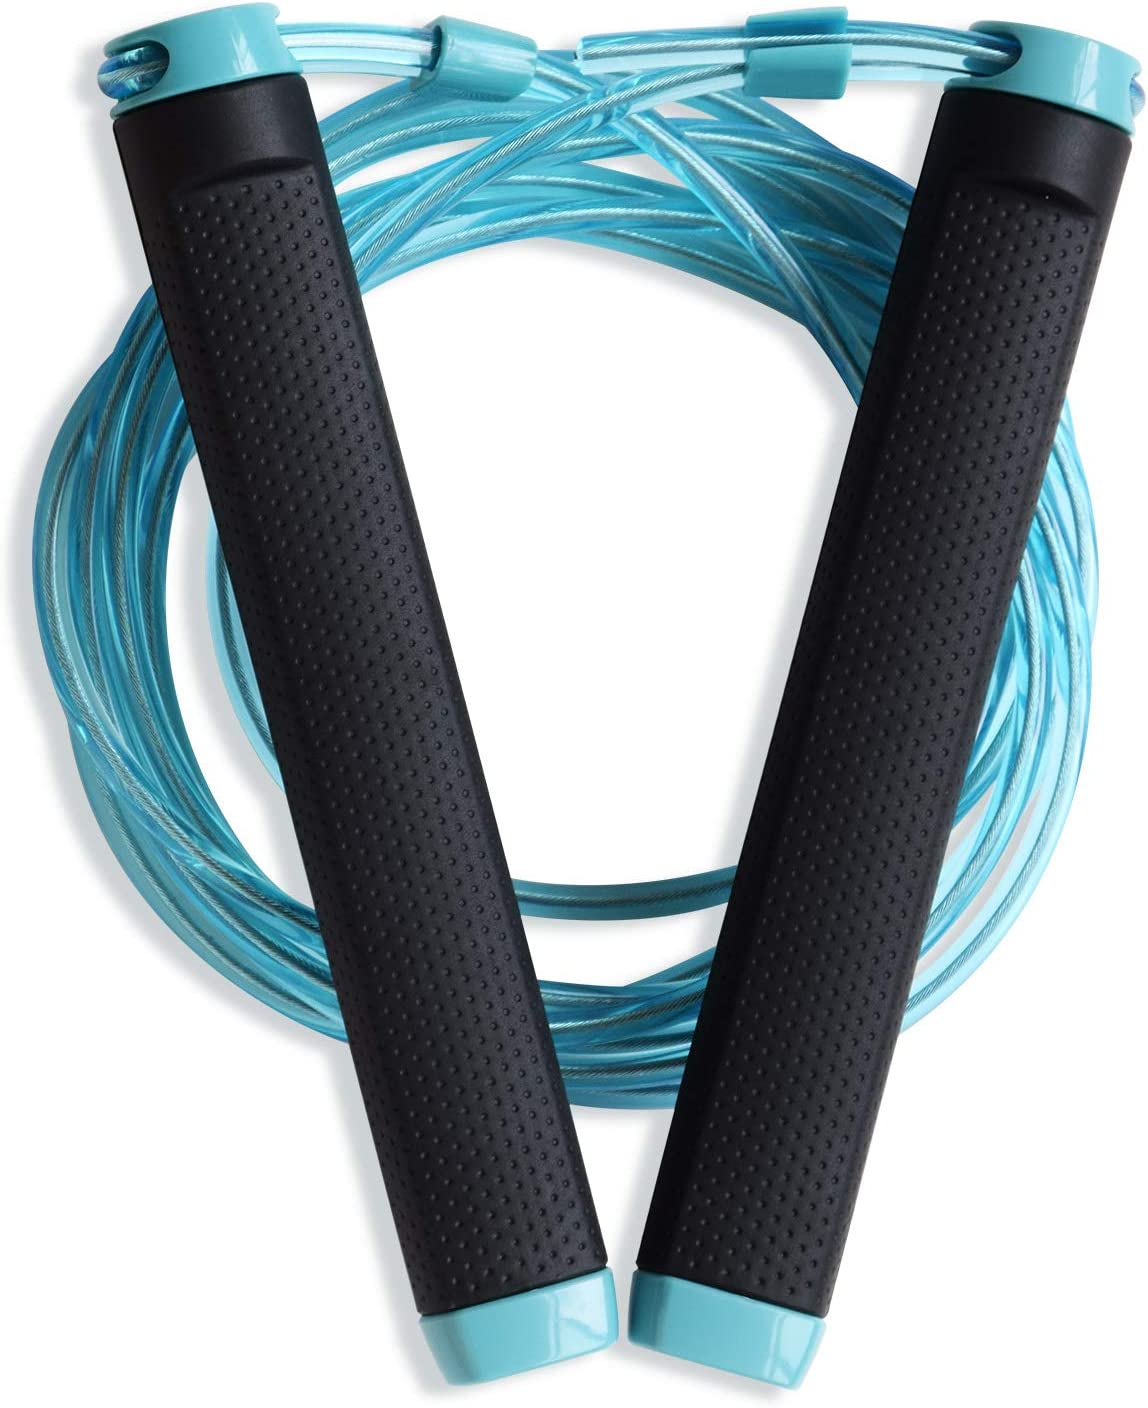 CHICHEN Jump Rope 10FT Length Adjustable to All Heights with Air Vent on The Gri